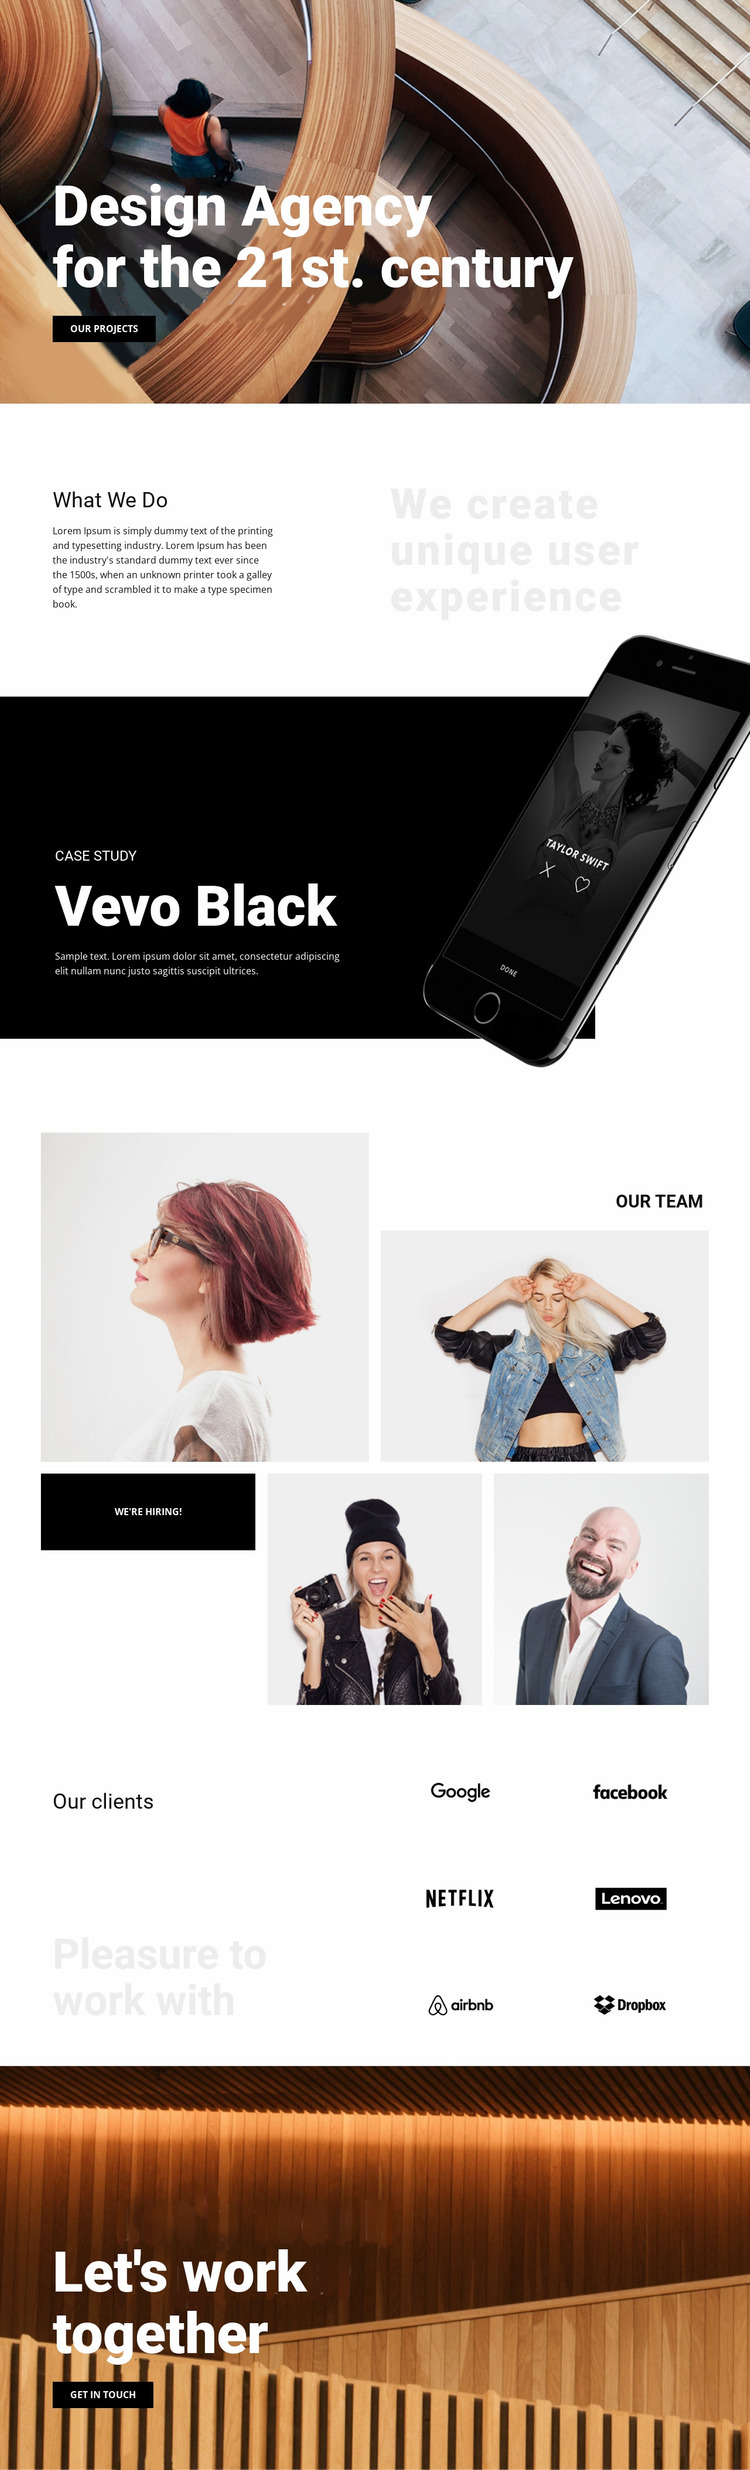 Our work is your success Website Mockup